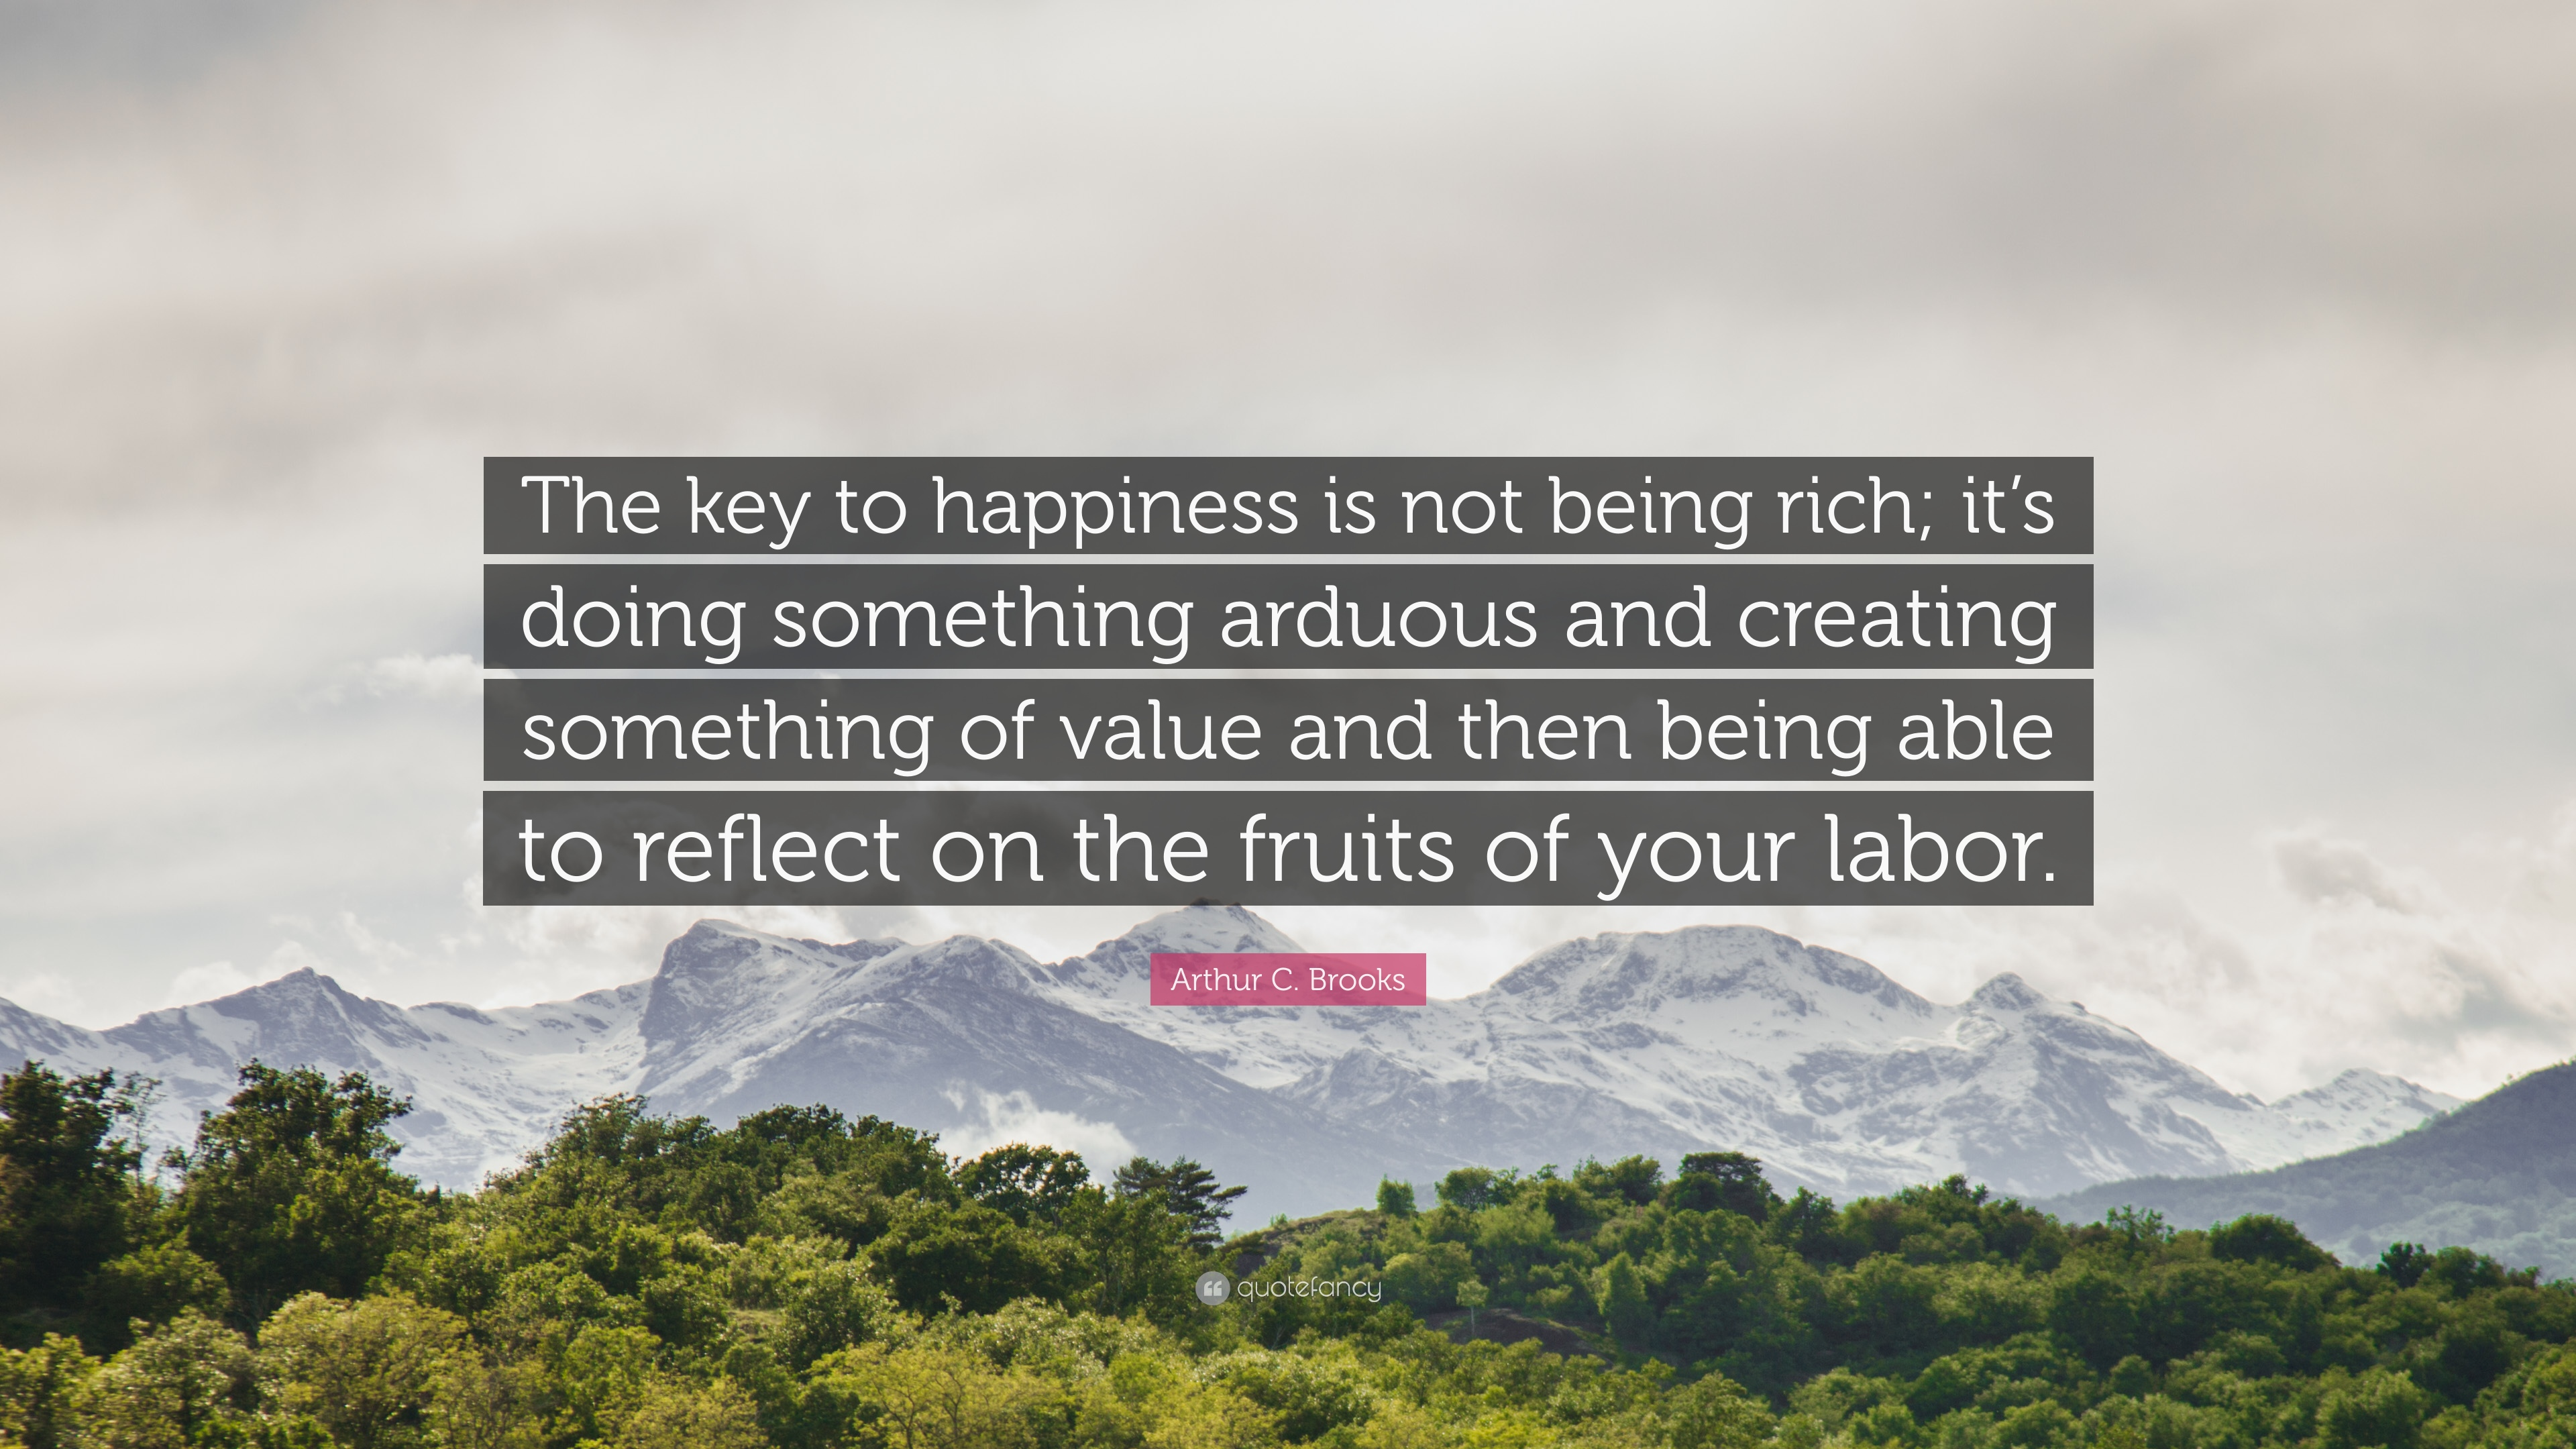 Arthur C Brooks Quote The Key To Happiness Is Not Being Rich